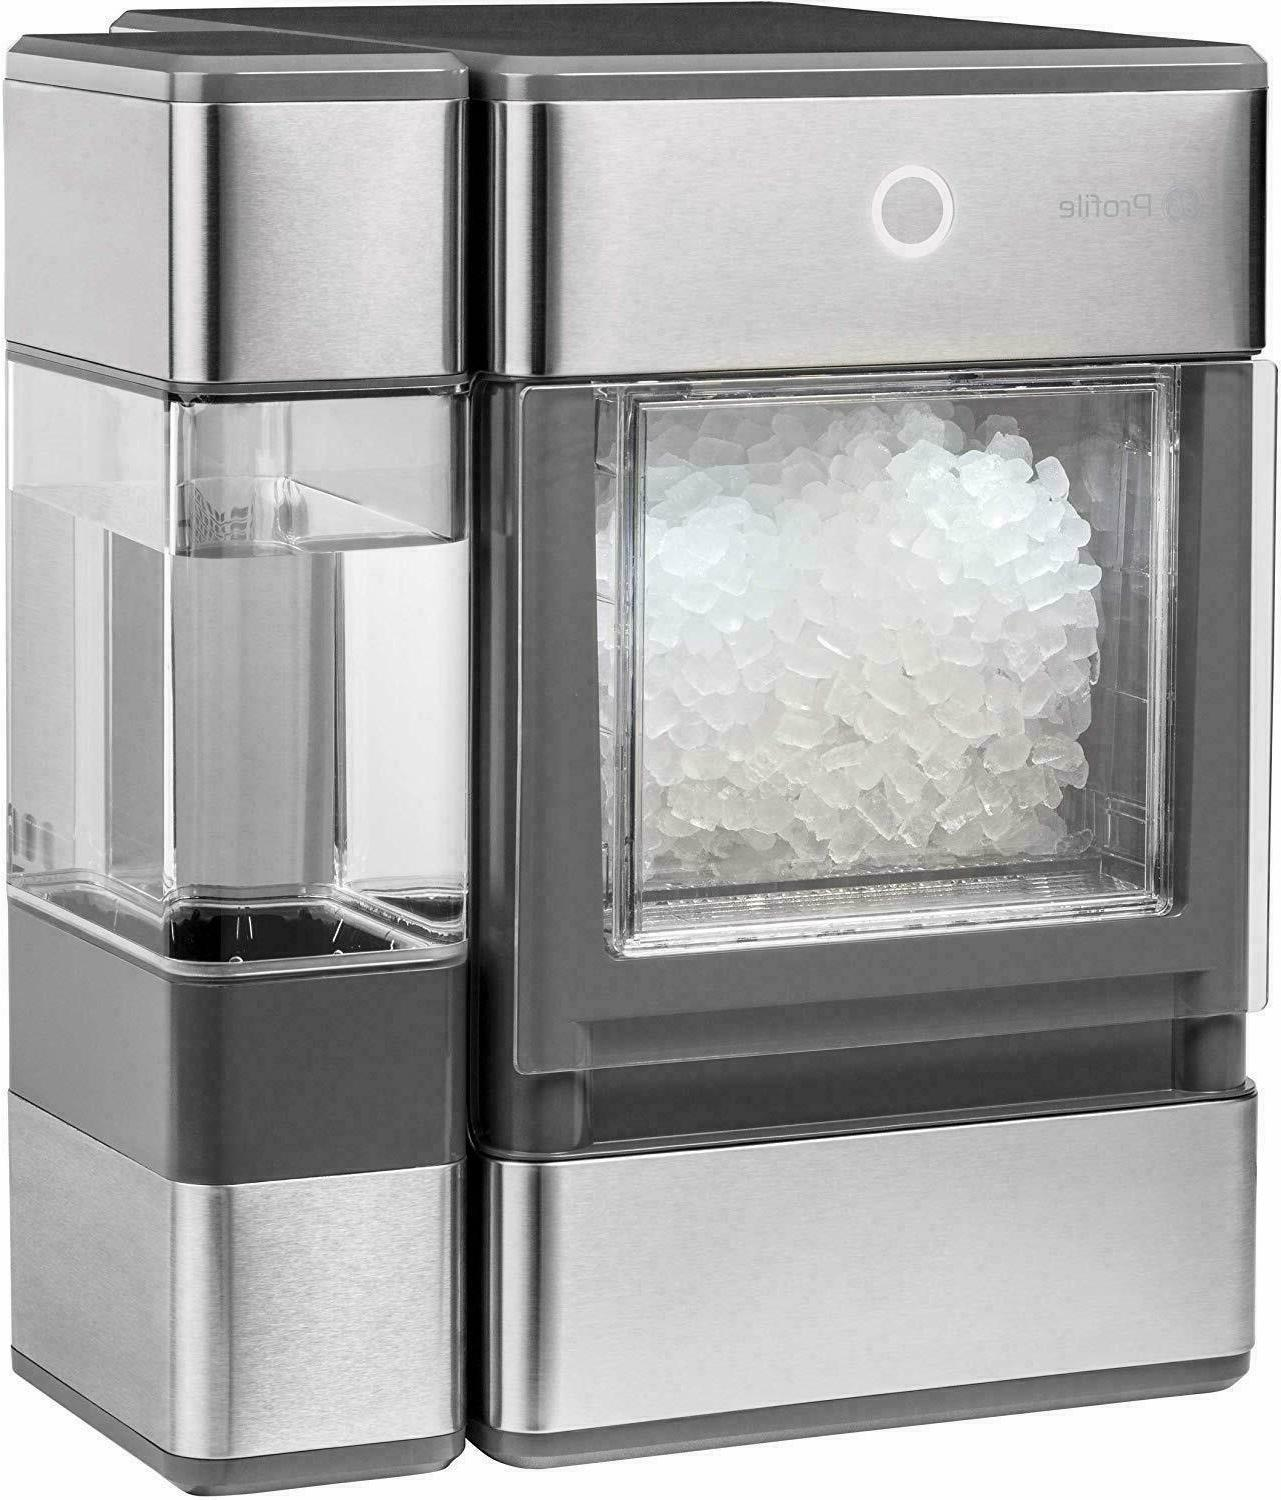 profile opal countertop nugt ice maker 3lb